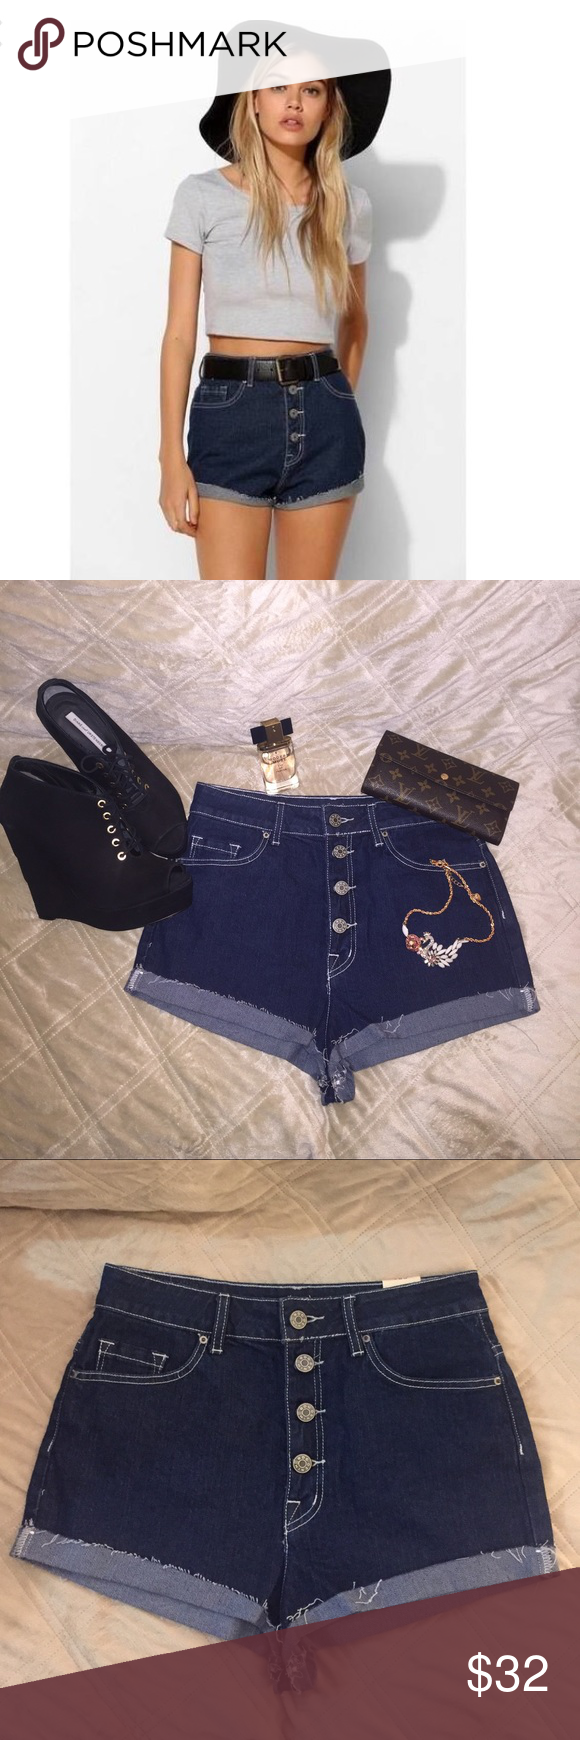 """FINAL SALE! UO super high rise foxy"""" cut offs. NWT. Urban outfitters bdg brand """"super high rise foxy"""" cut off denim shorts. Dark denim with white stitching. Size 28. Bundle to save! Urban Outfitters Shorts Jean Shorts"""